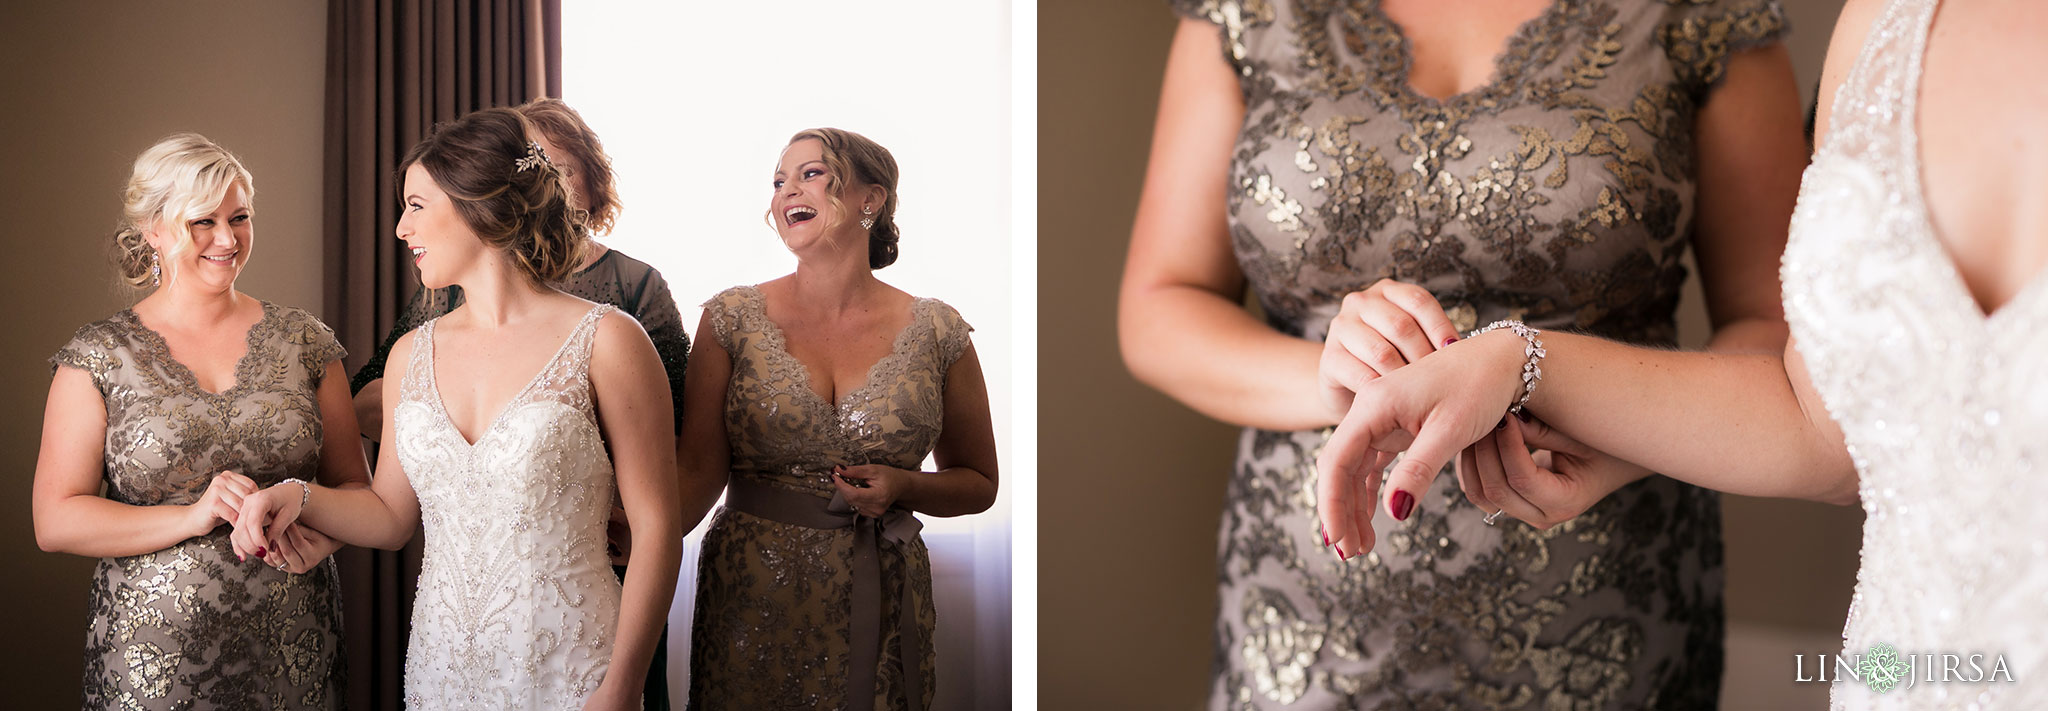 03 macarthur los angeles wedding photography